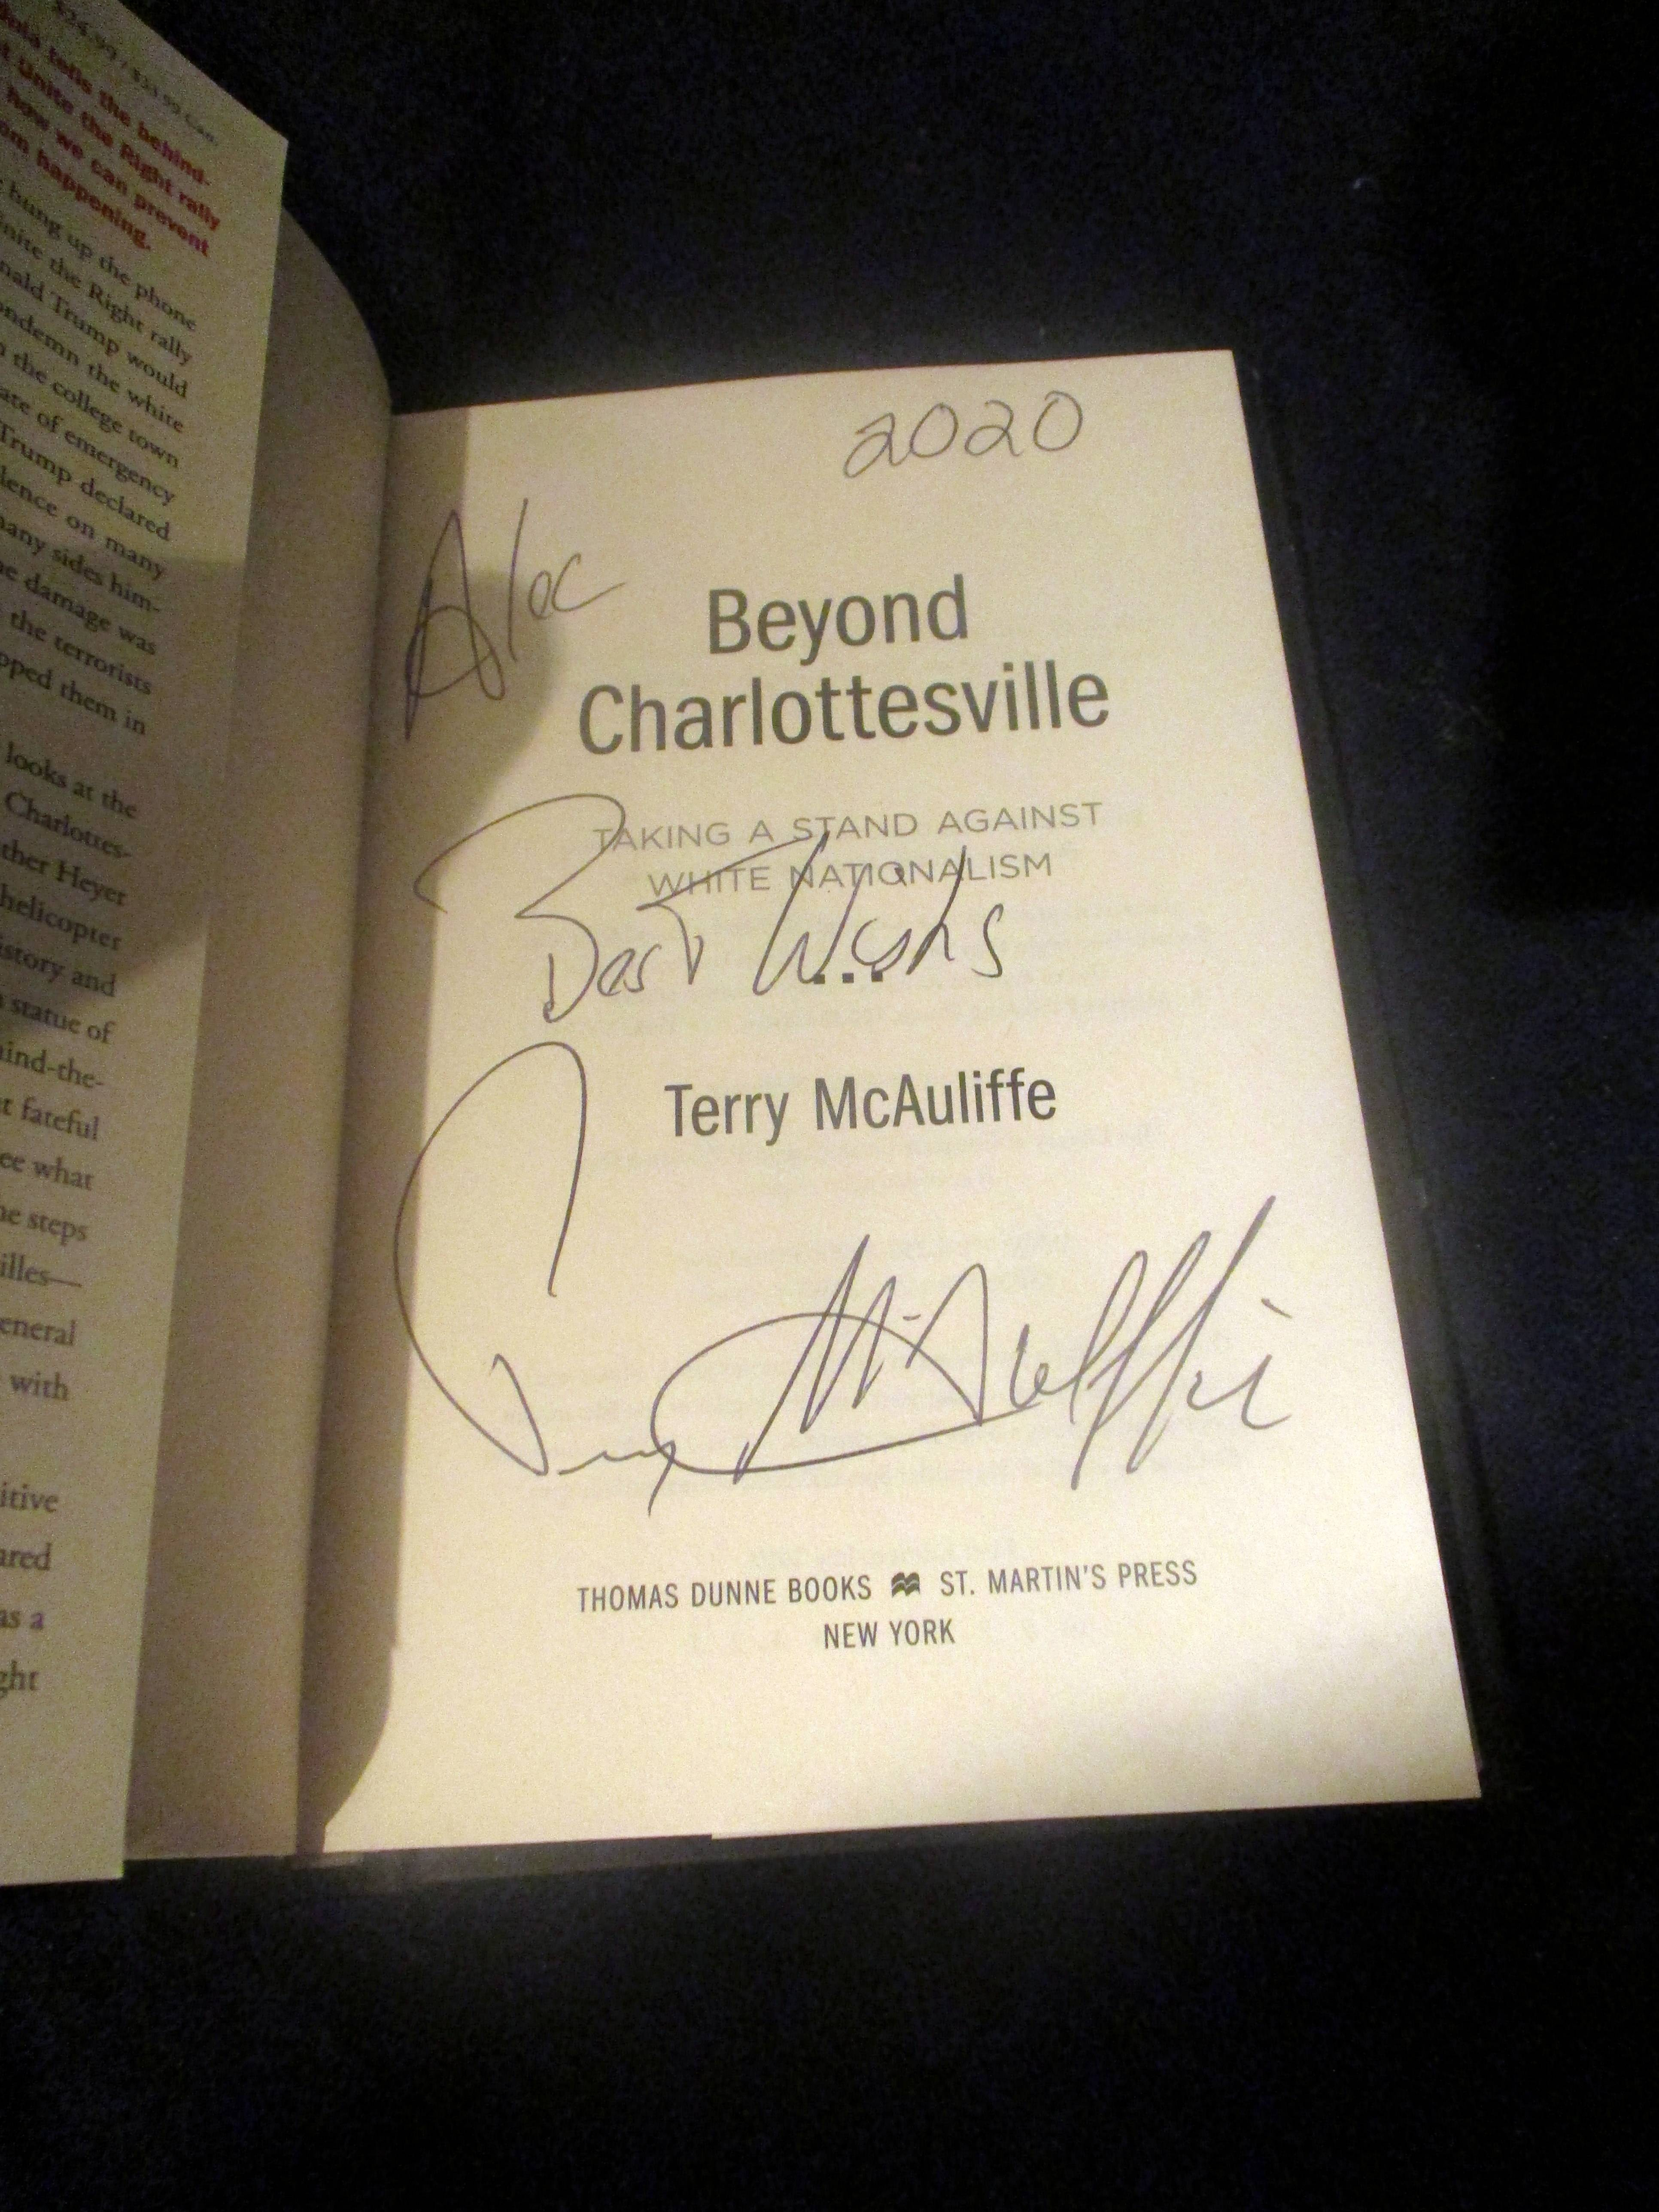 Autographed Title Page of Beyond Charlottesville: Taking a Stand Against White Nationalism at The Wombatorium 2.0: A Capital Idea